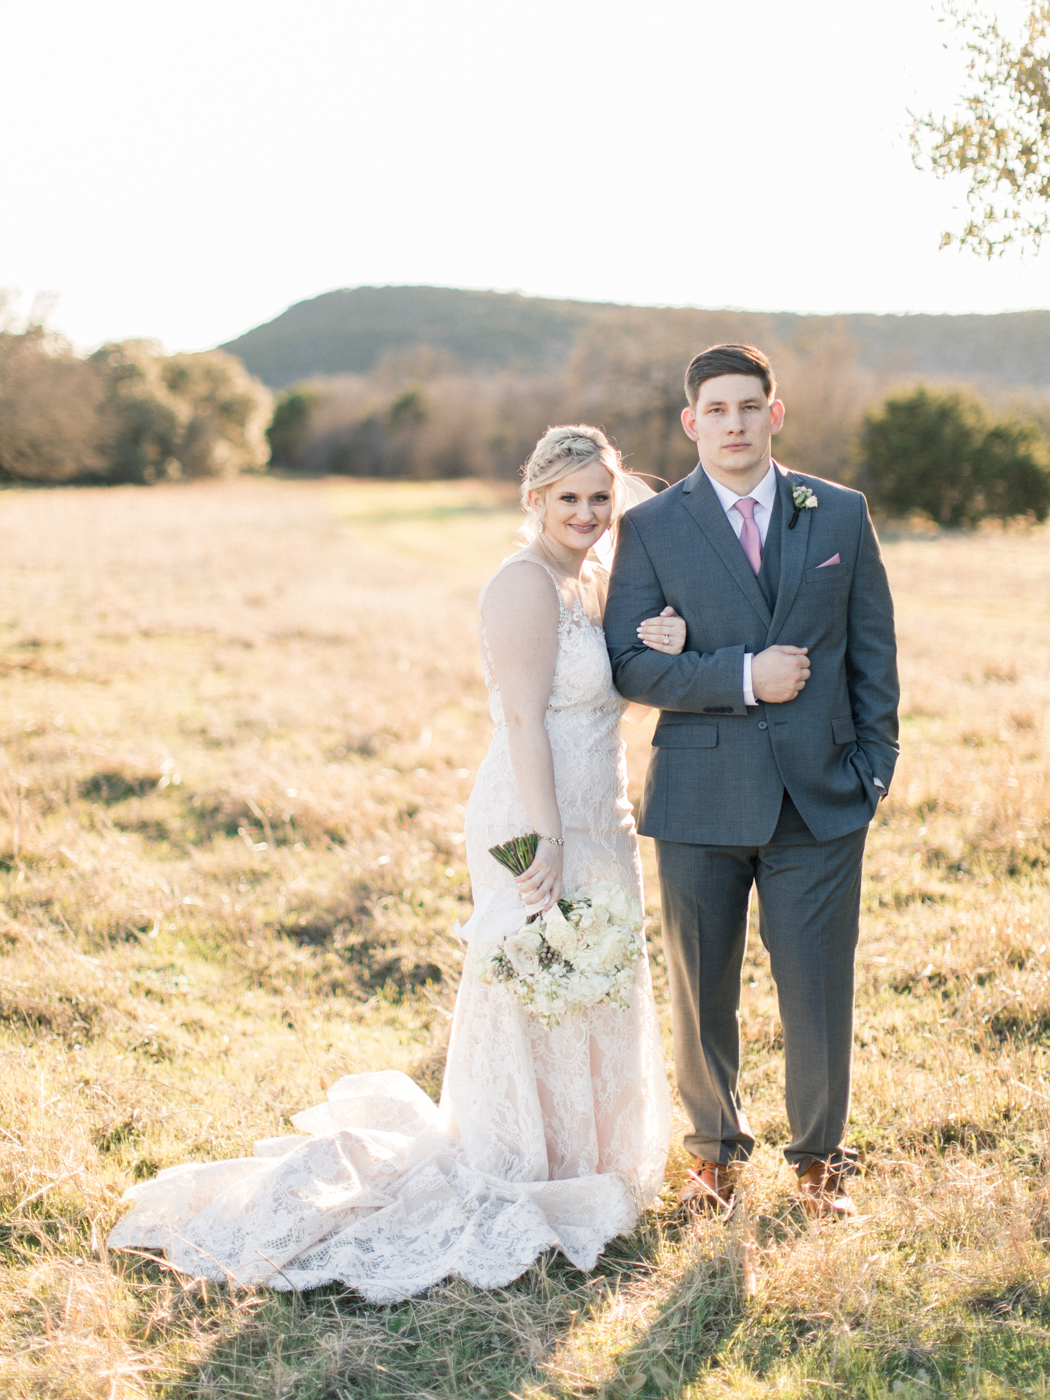 Wichita Falls, TX Wedding Photographer - Light and Airy Photographer